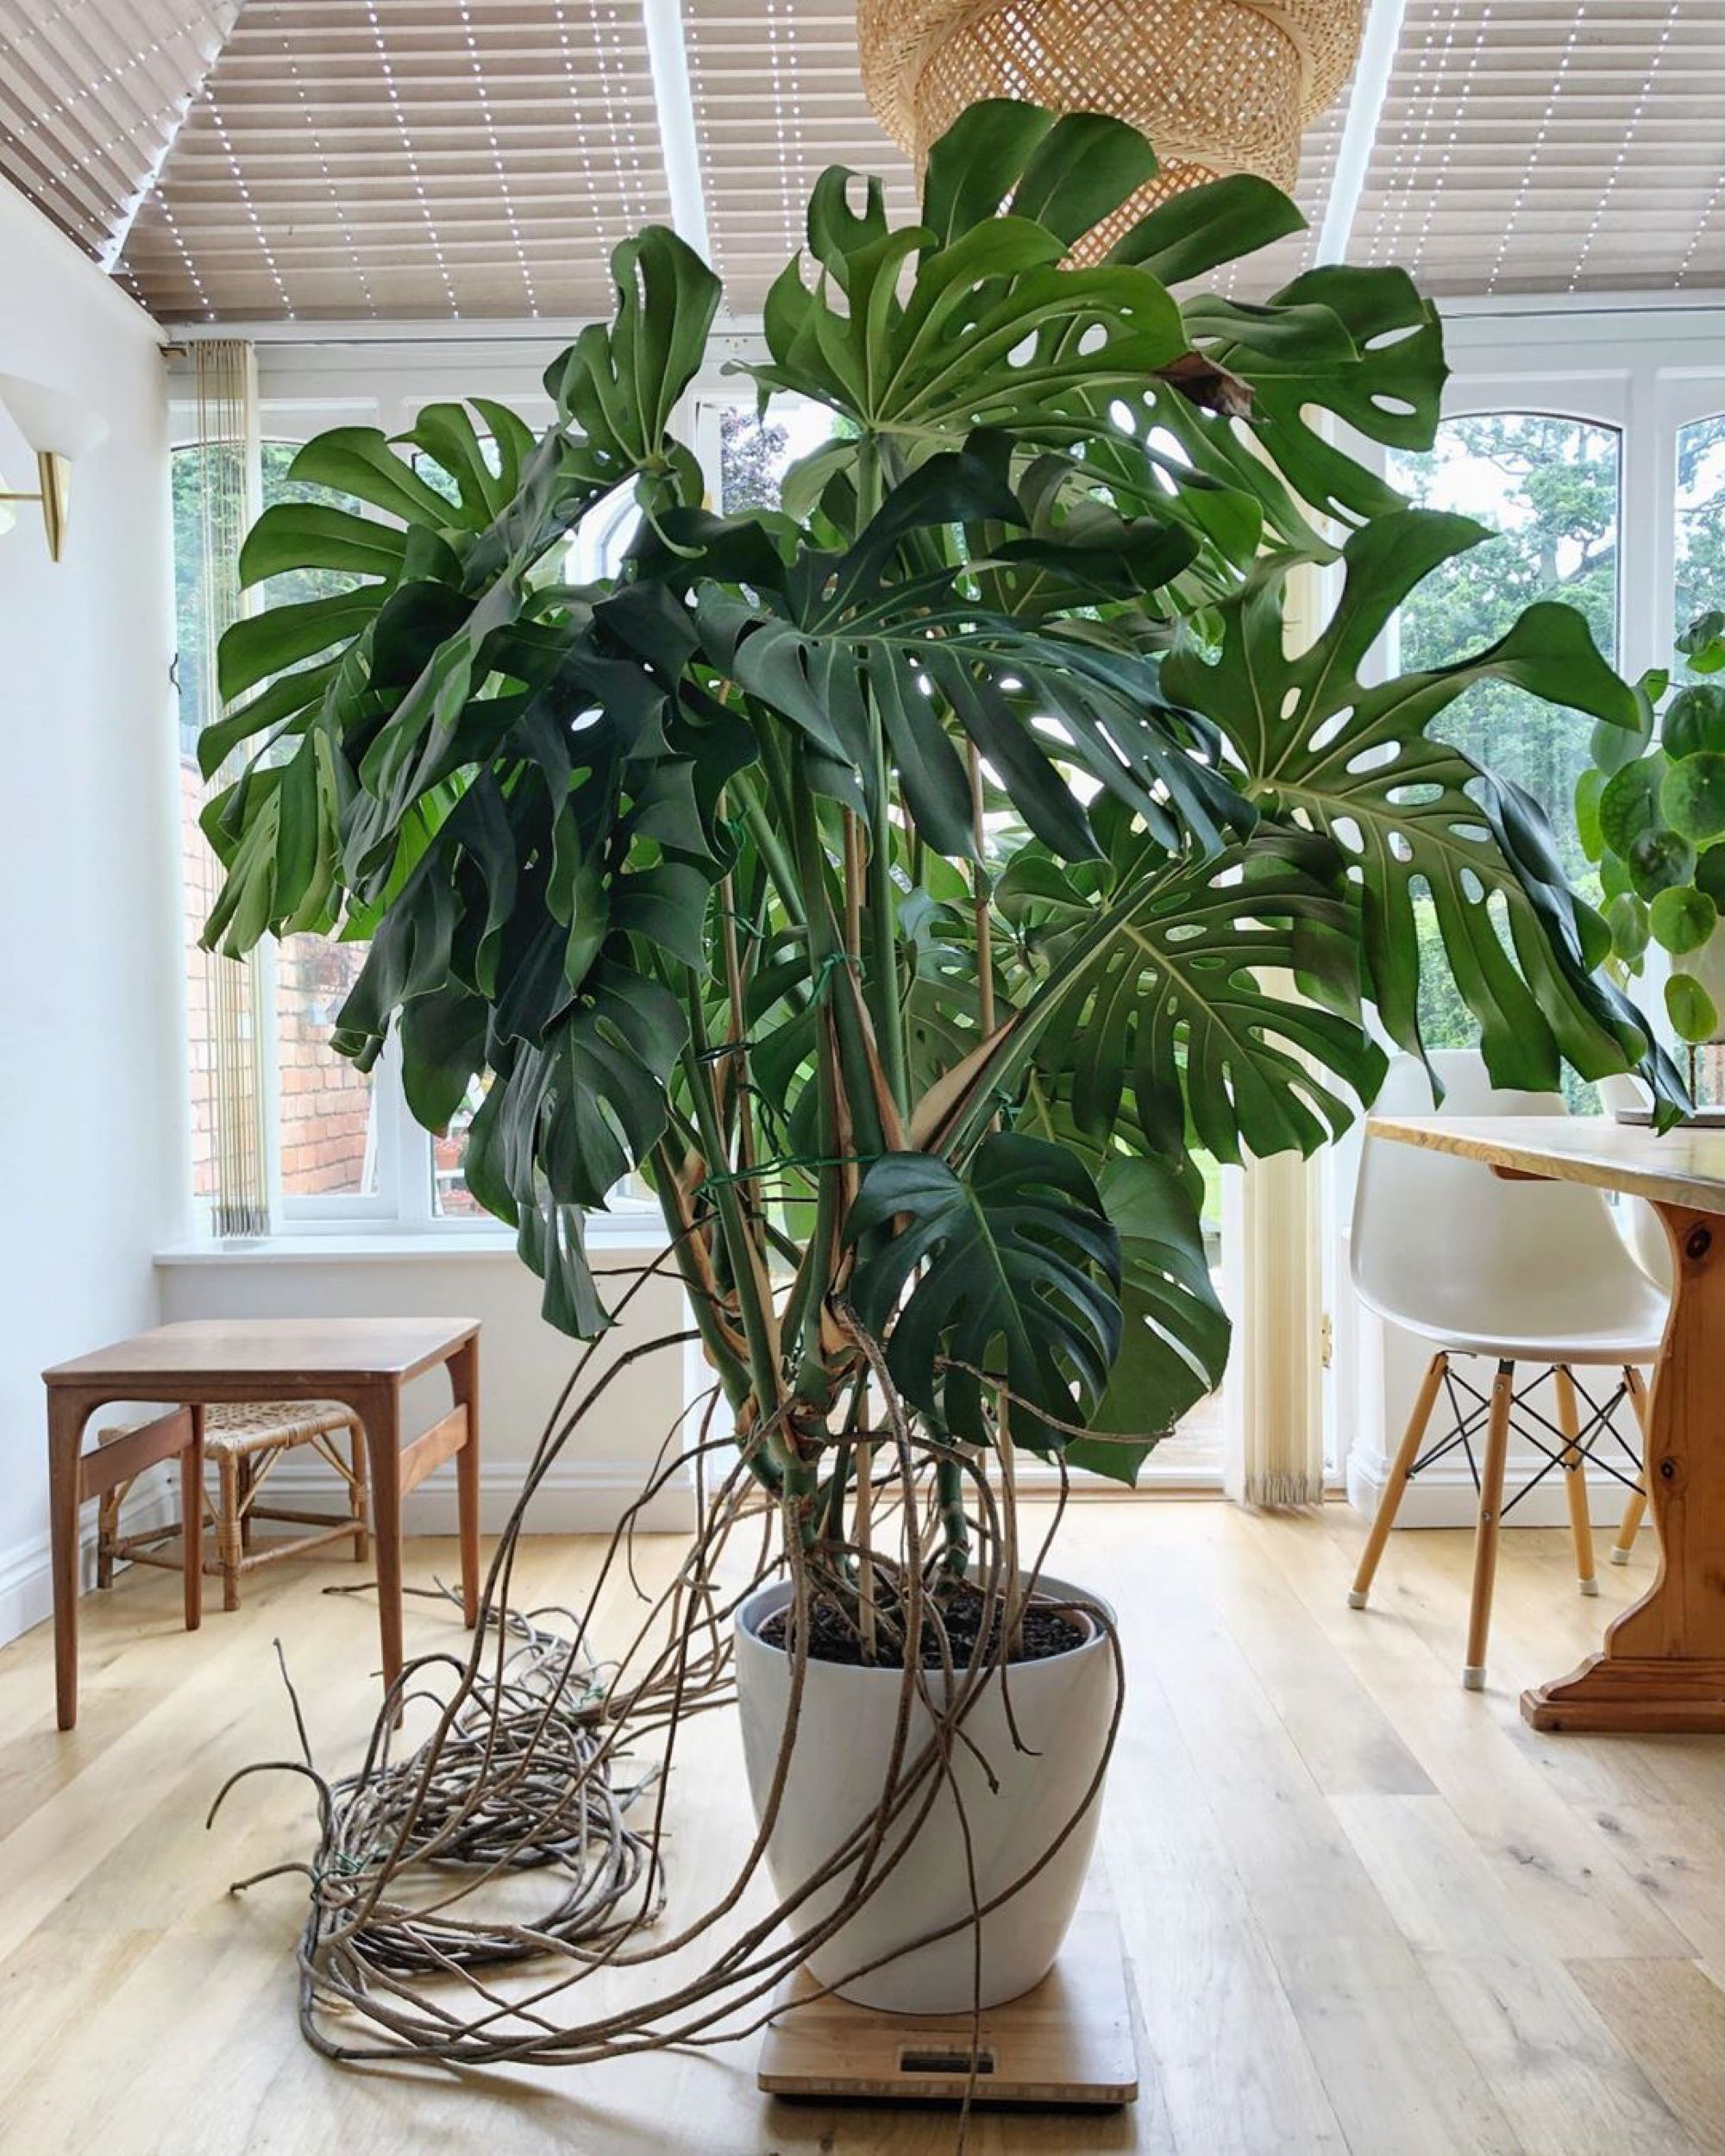 When to Repot The Plant